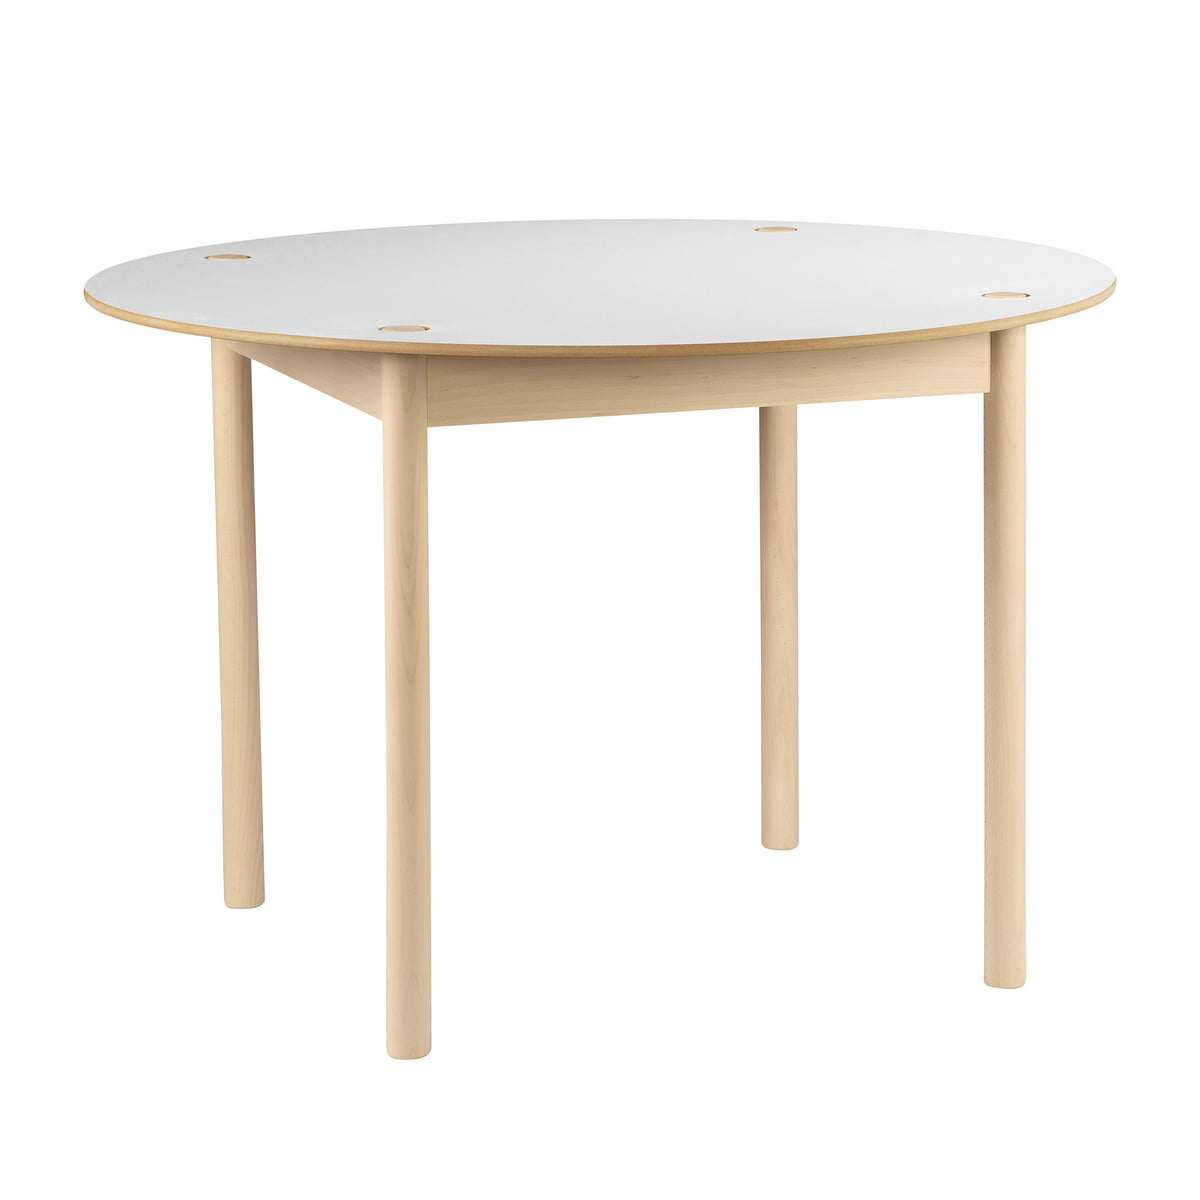 c44 round table by hay in the design shop. Black Bedroom Furniture Sets. Home Design Ideas